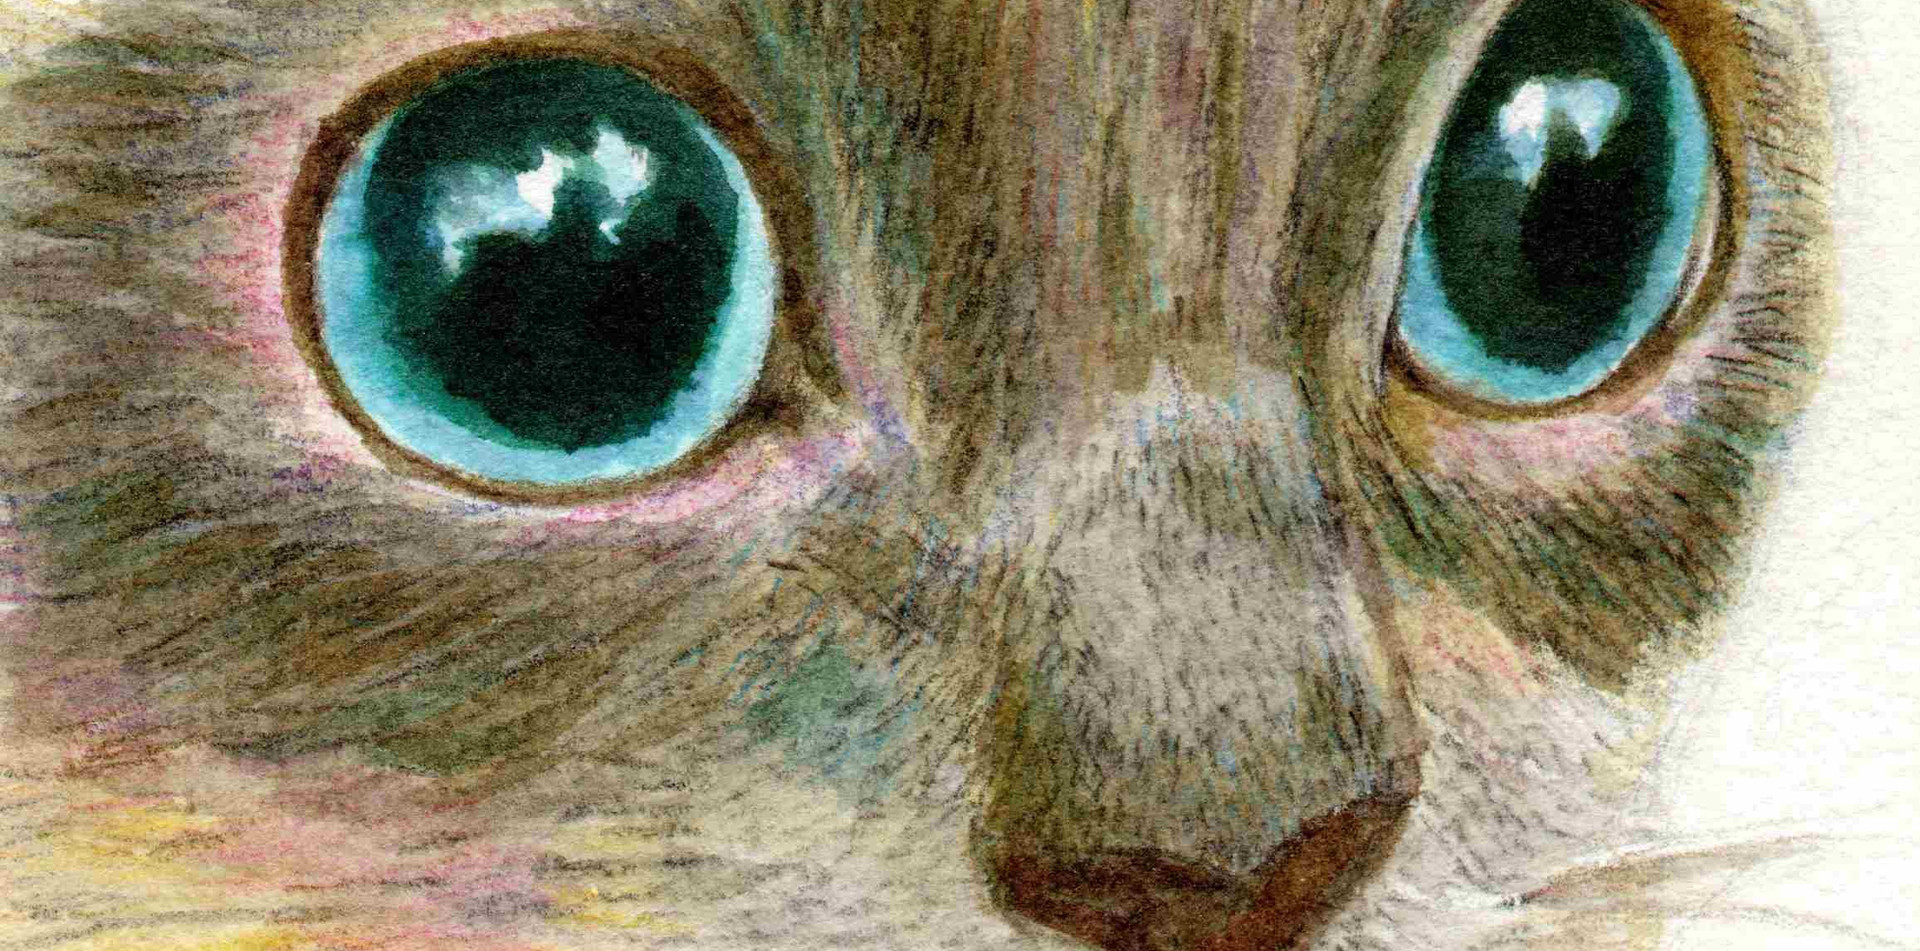 110 - The Face Of A Siamese Cat